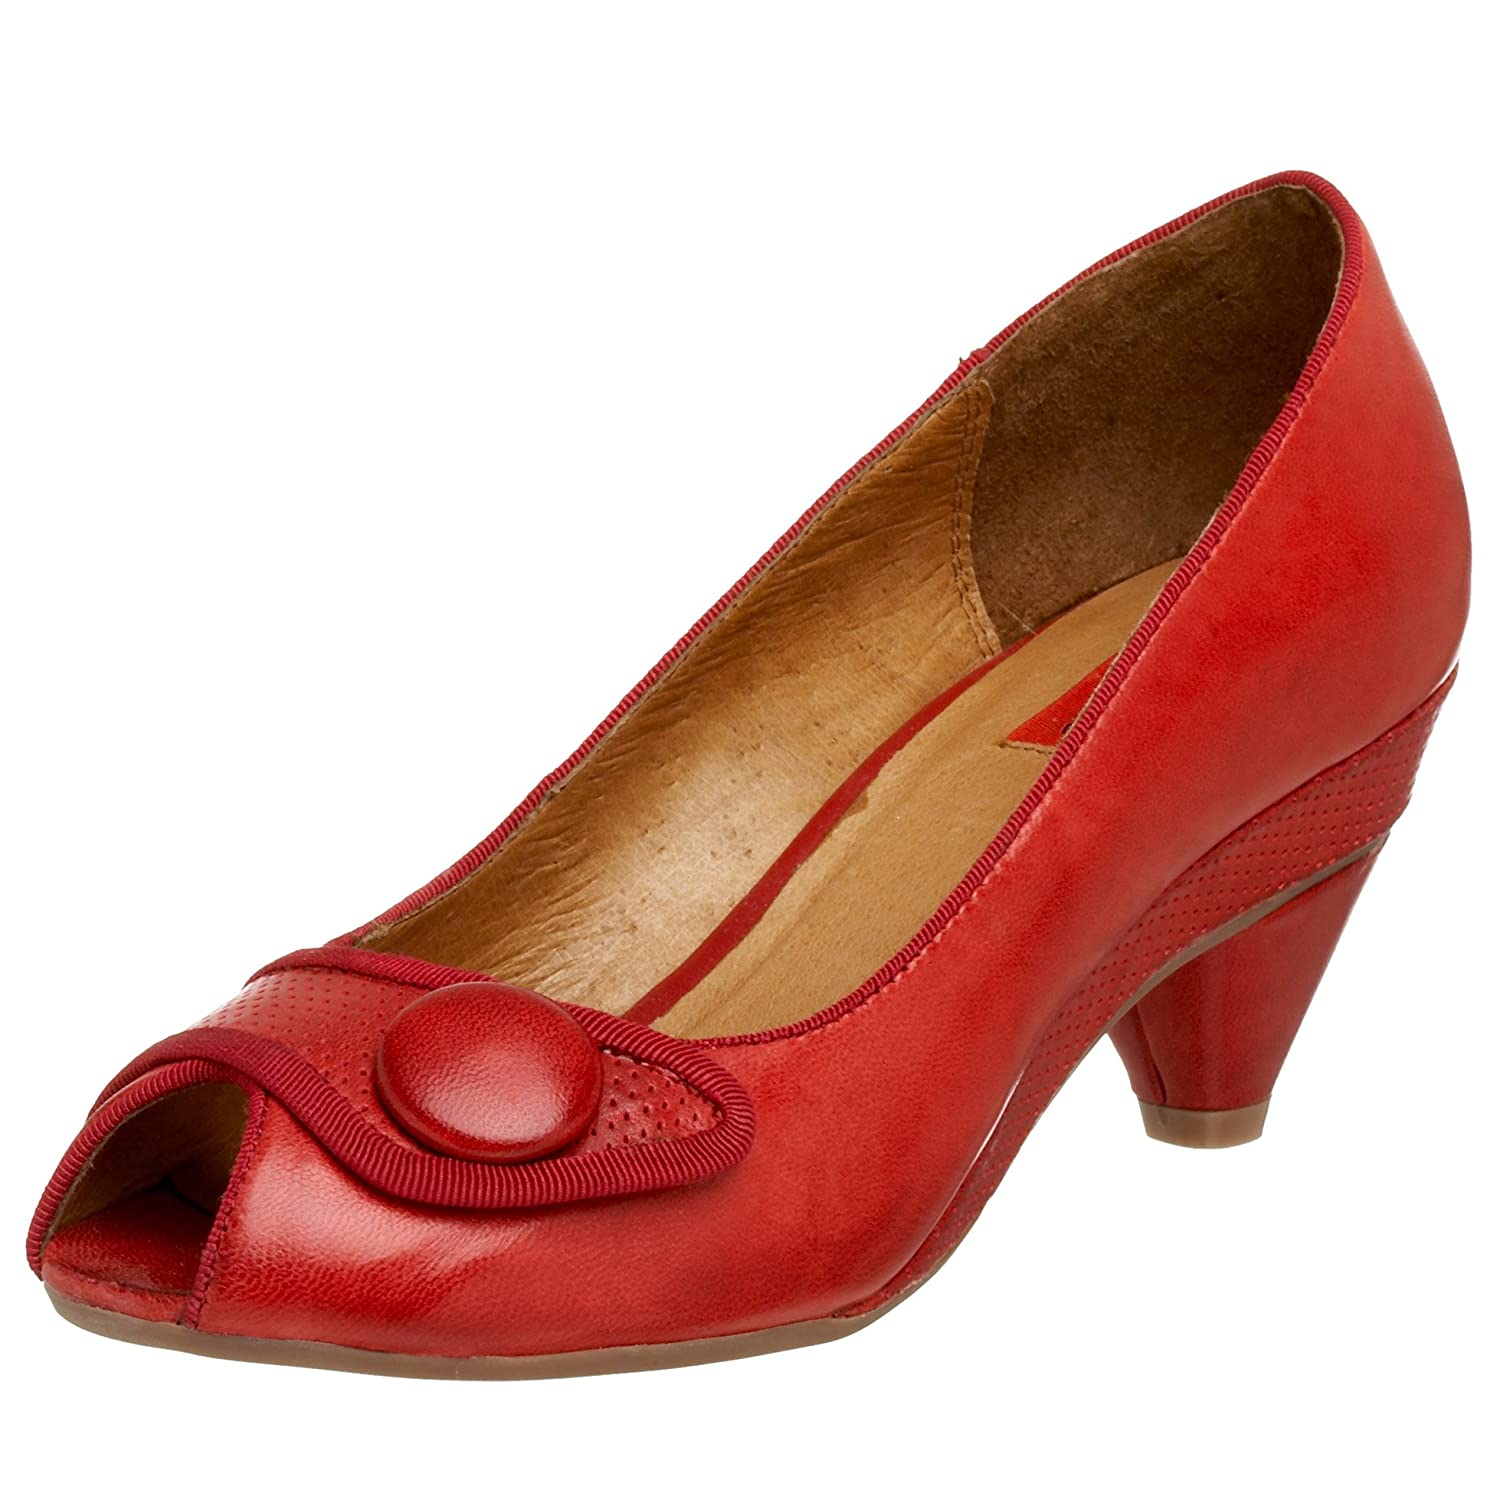 Miz Mooz Ruby Peep Toe Pump